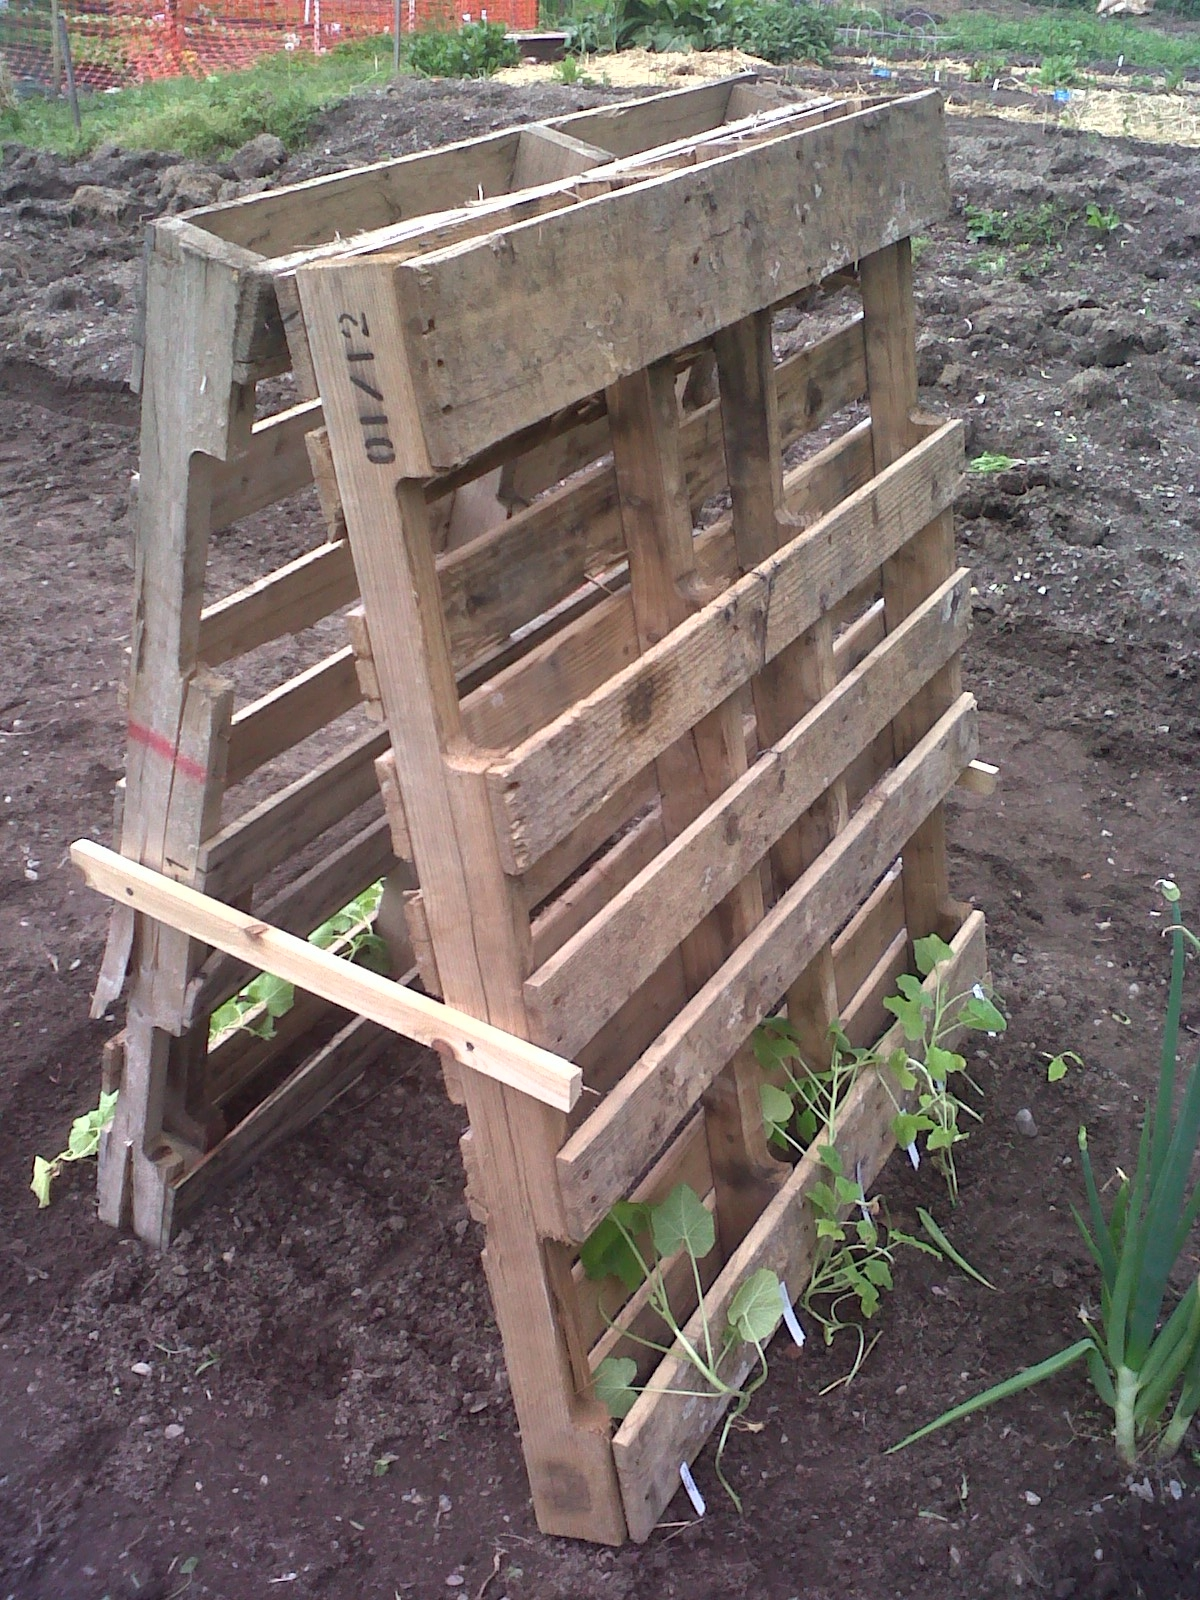 Preppy pink crocodile tutorial how to build a squash or for How to build a house out of wood pallets